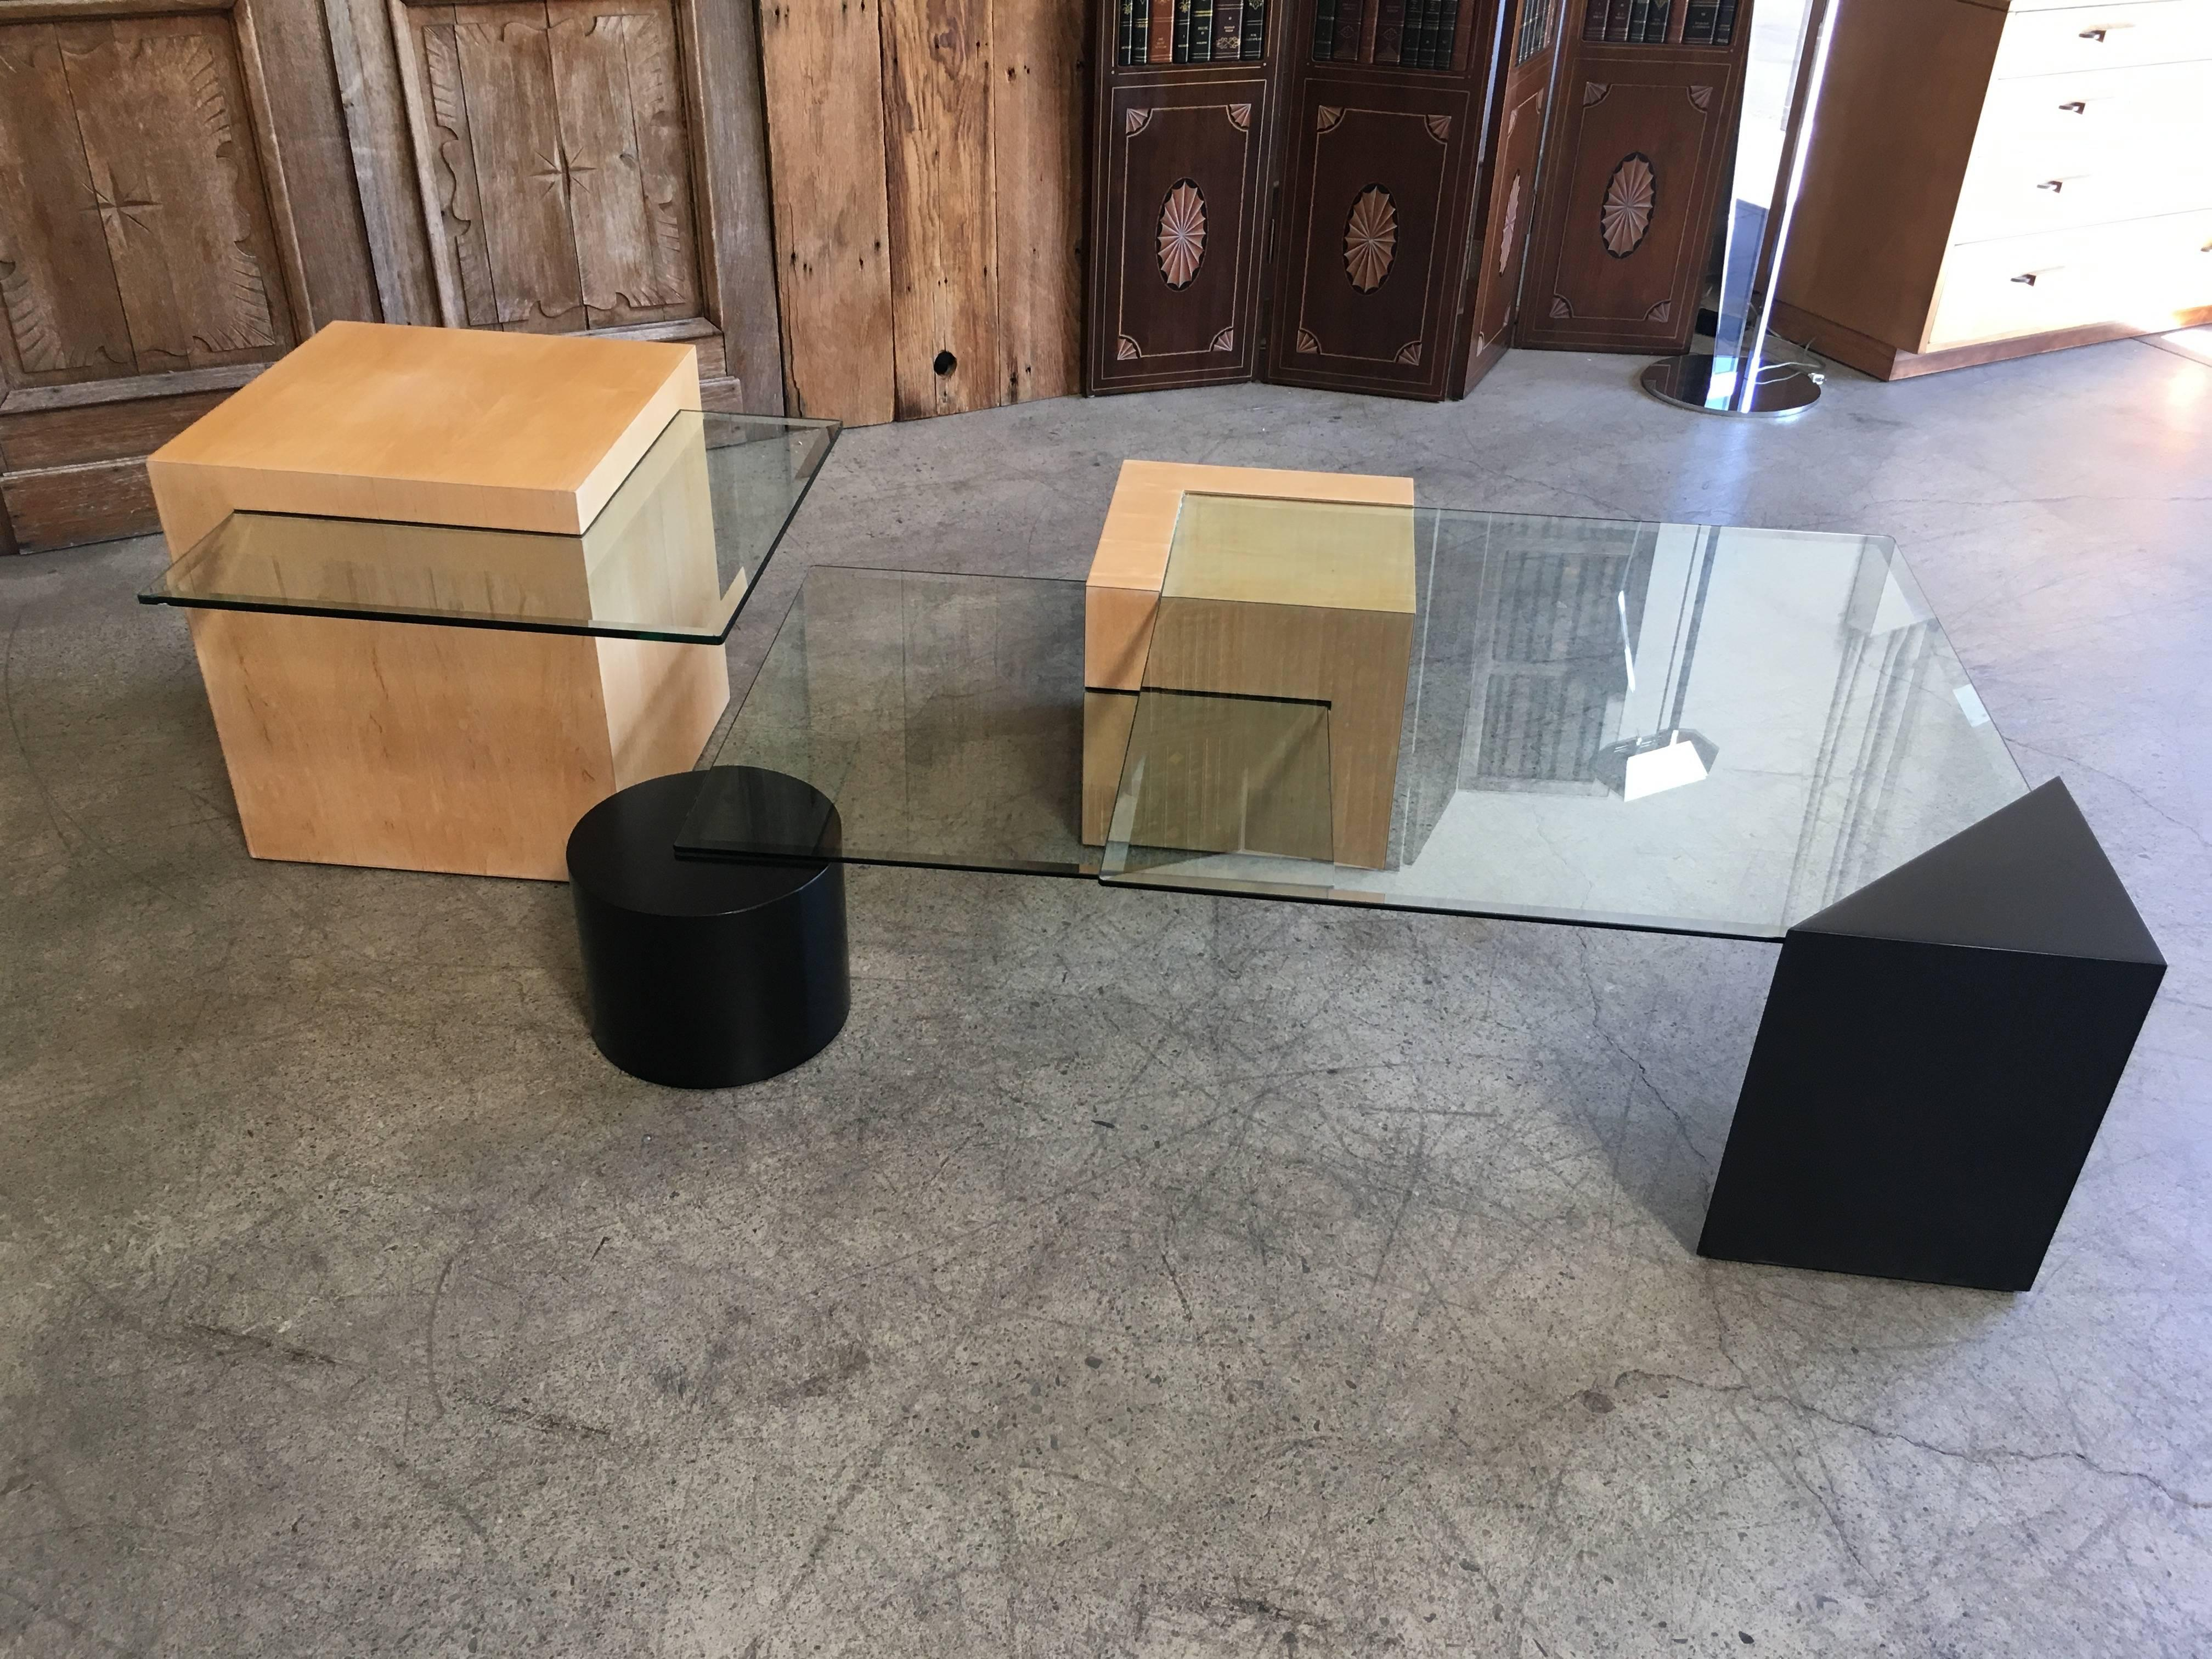 Wood And Metal Multi Level Coffee Table.Geometric Wood And Glass Multi Level Coffee Table